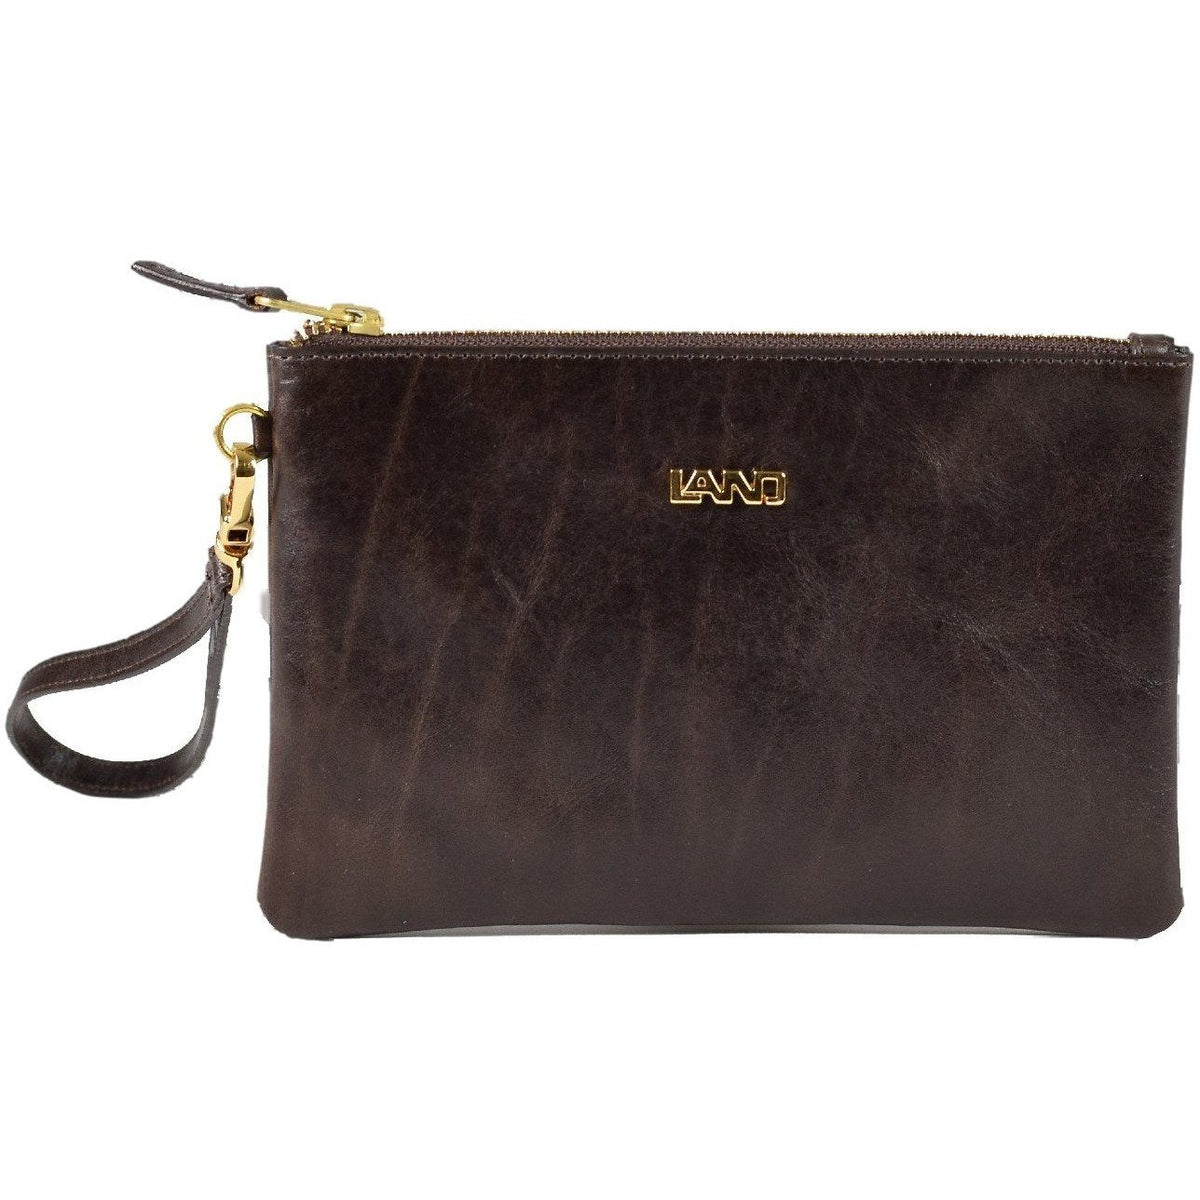 Limited Wristlet Clutch, Wristlet | LAND Leather